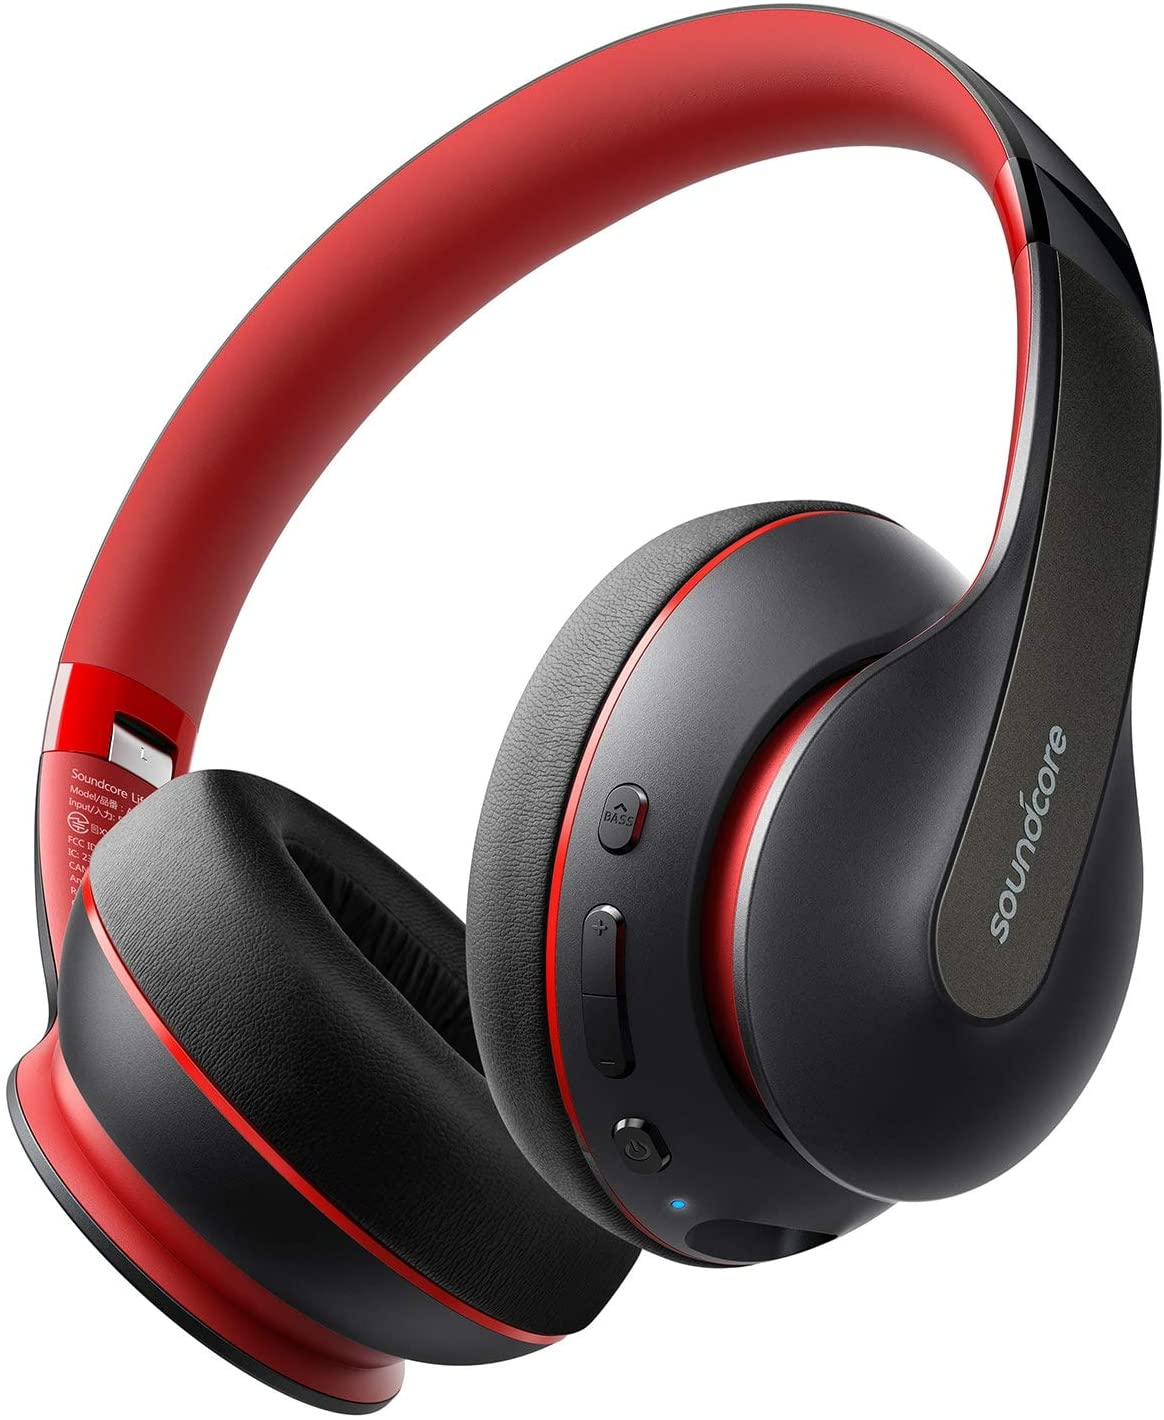 Anker Soundcore Life Q10 Wireless Bluetooth Headphones, Over Ear, Foldable, Hi-Res Certified Sound, 60-Hour Playtime, Fast USB-C Charging, Deep Bass, Aux Input, For Travel, Online Class, Home Office